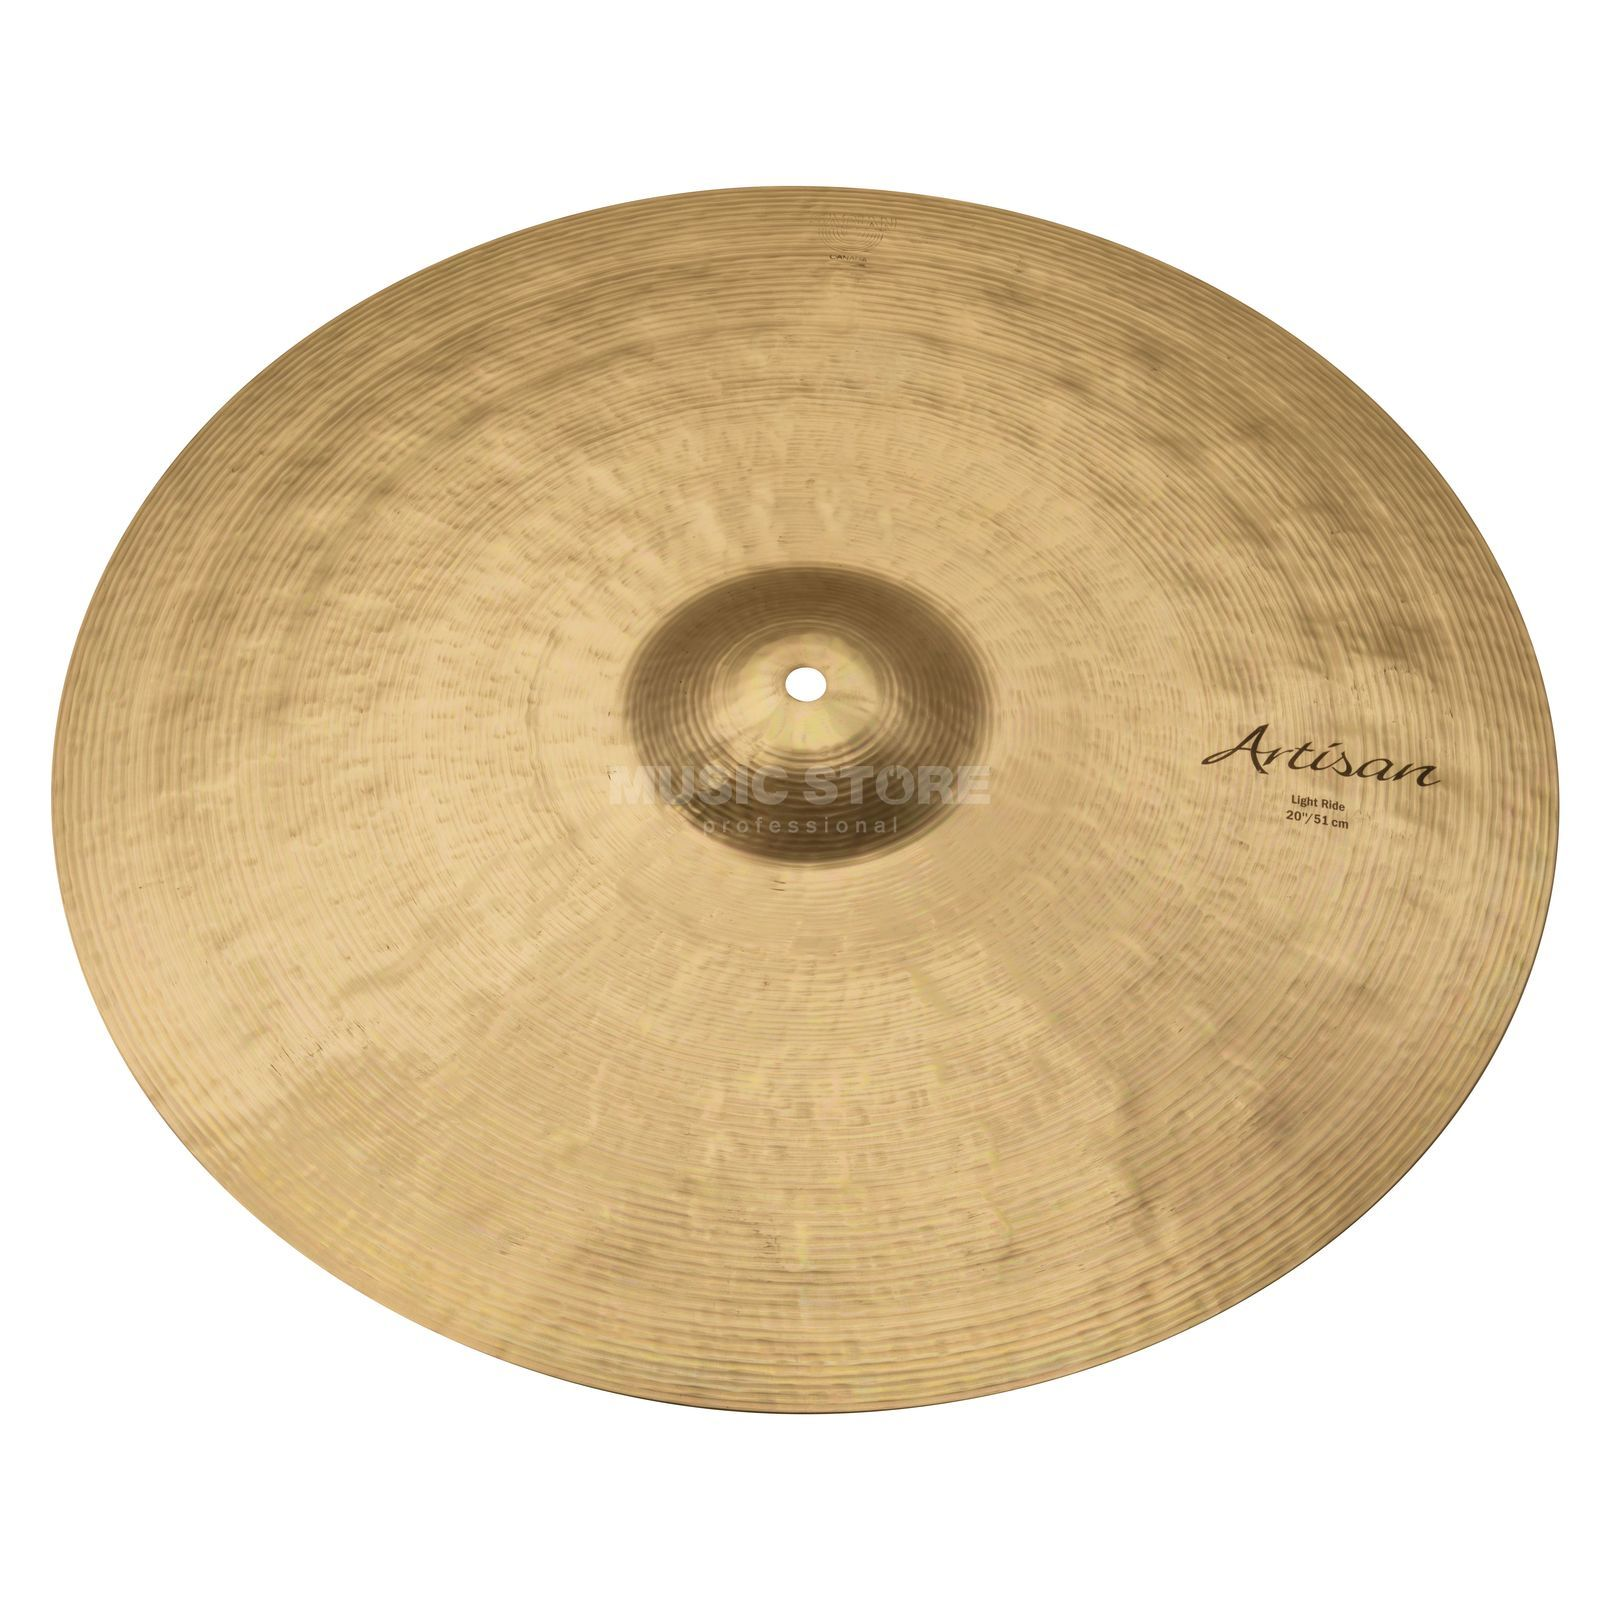 "Sabian Artisan Light Ride 20"", Brilliant Finish Produktbillede"